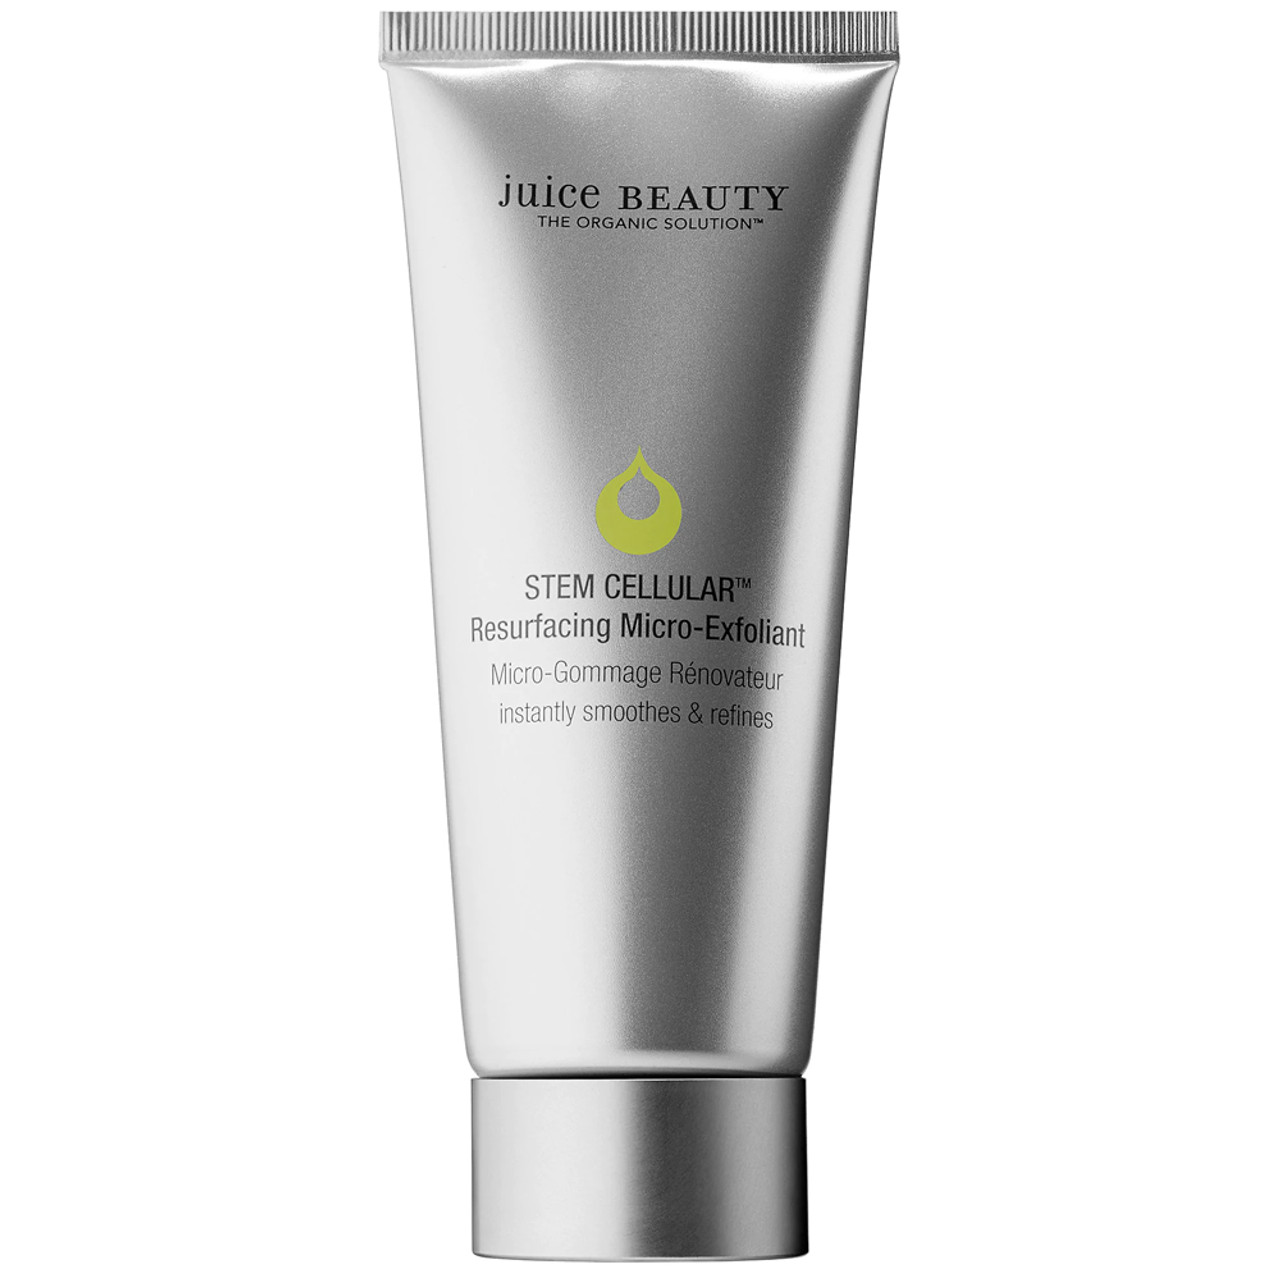 Juice Beauty SC Resurfacing Micro-Exfoliant